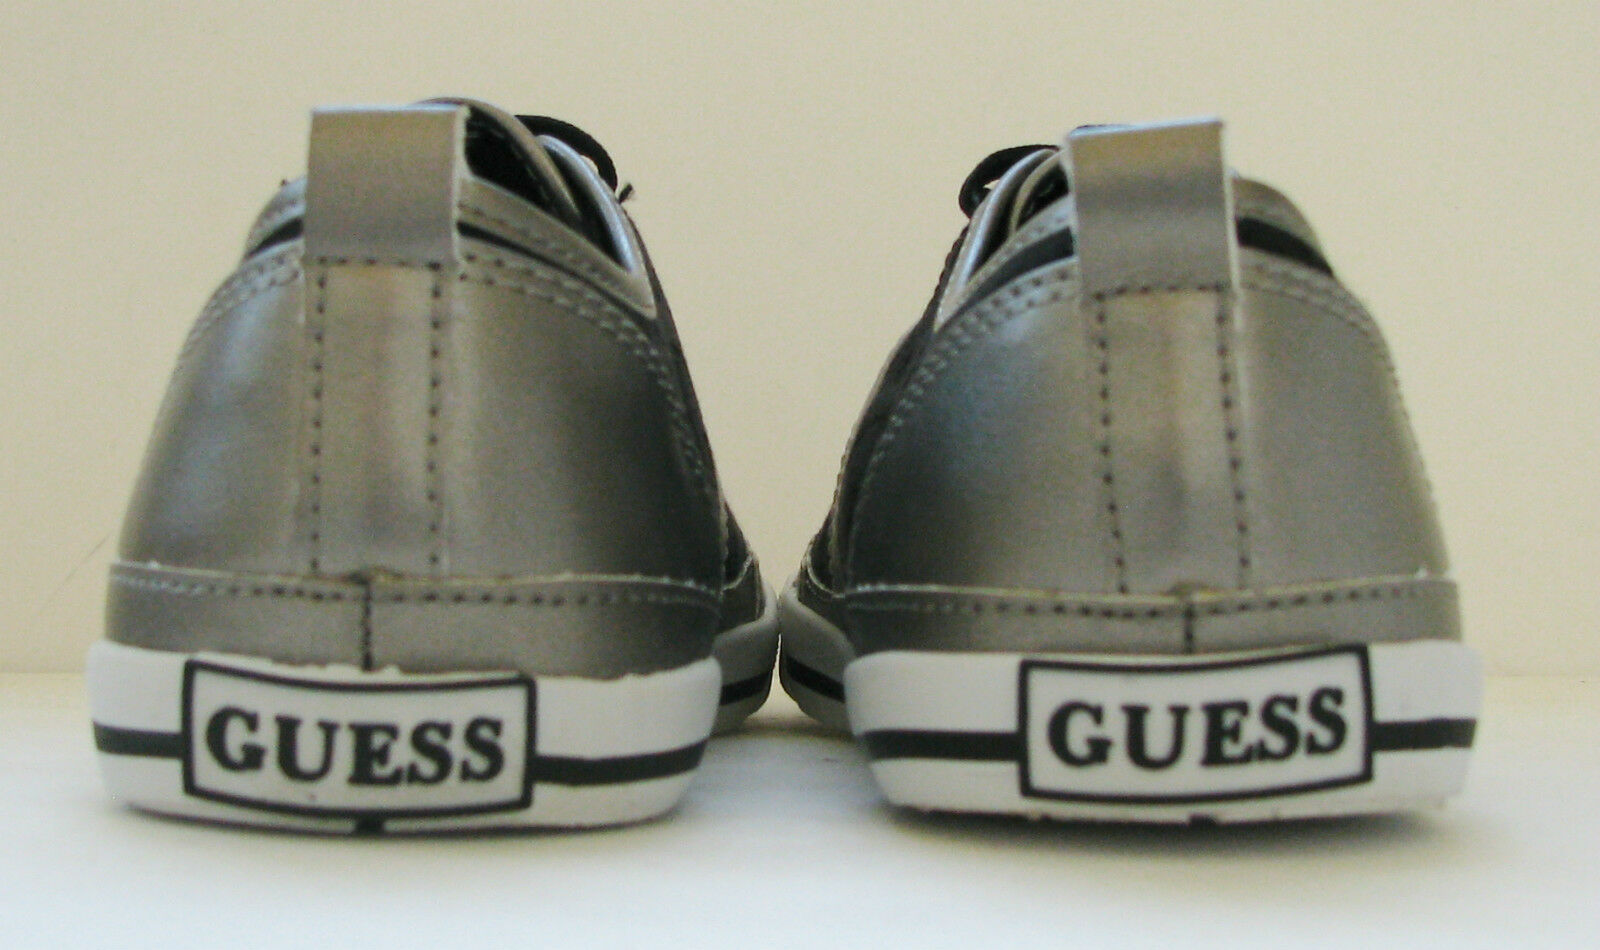 Nuovo- Guess Guess Guess Radica Nero Logo + Peltro Similpelle + argentoo Scarpe Sportive d20927